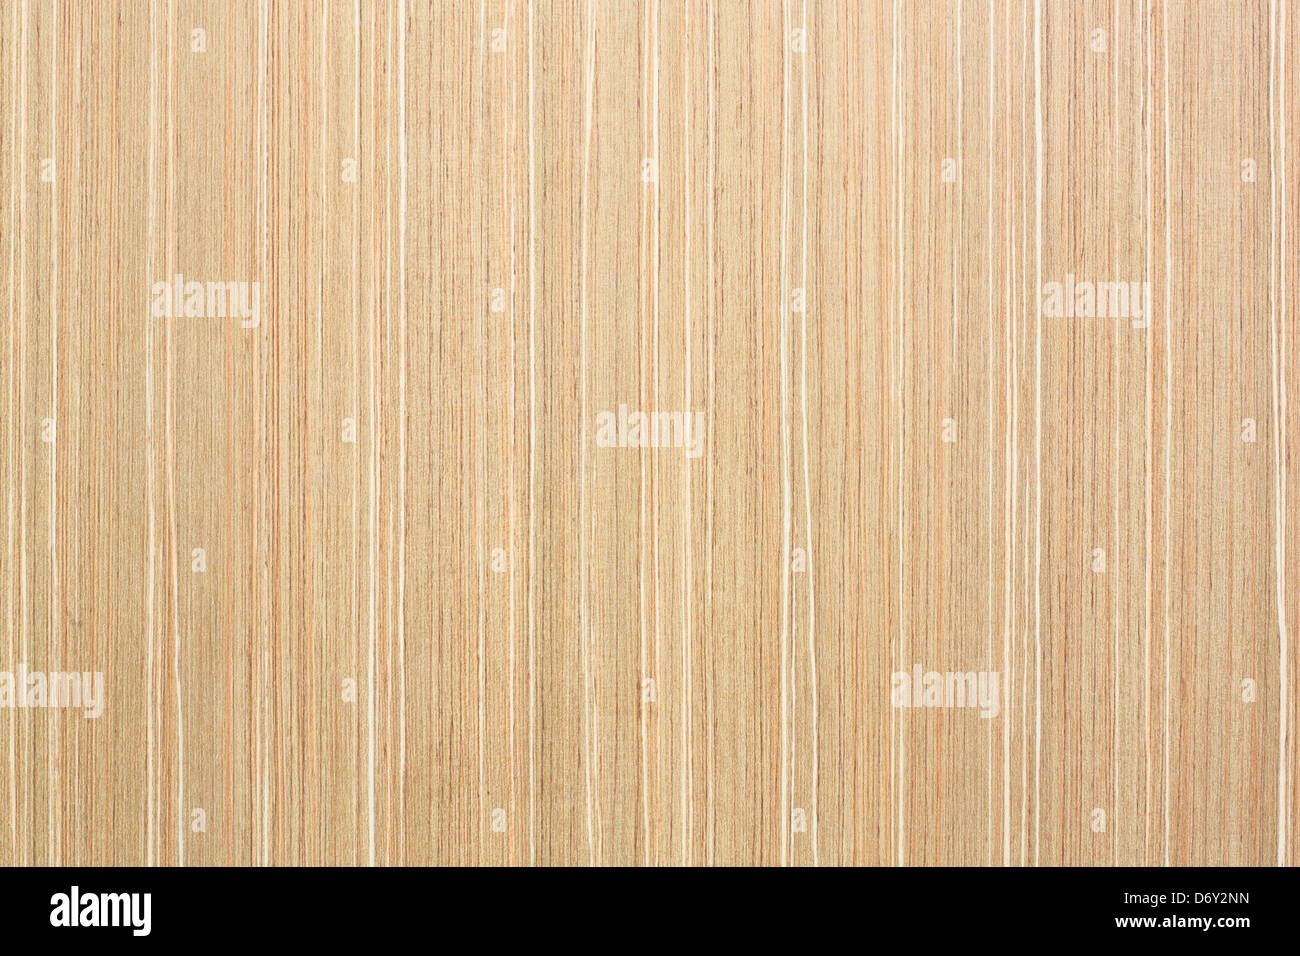 Modern Wood Wall Texture Inside Building